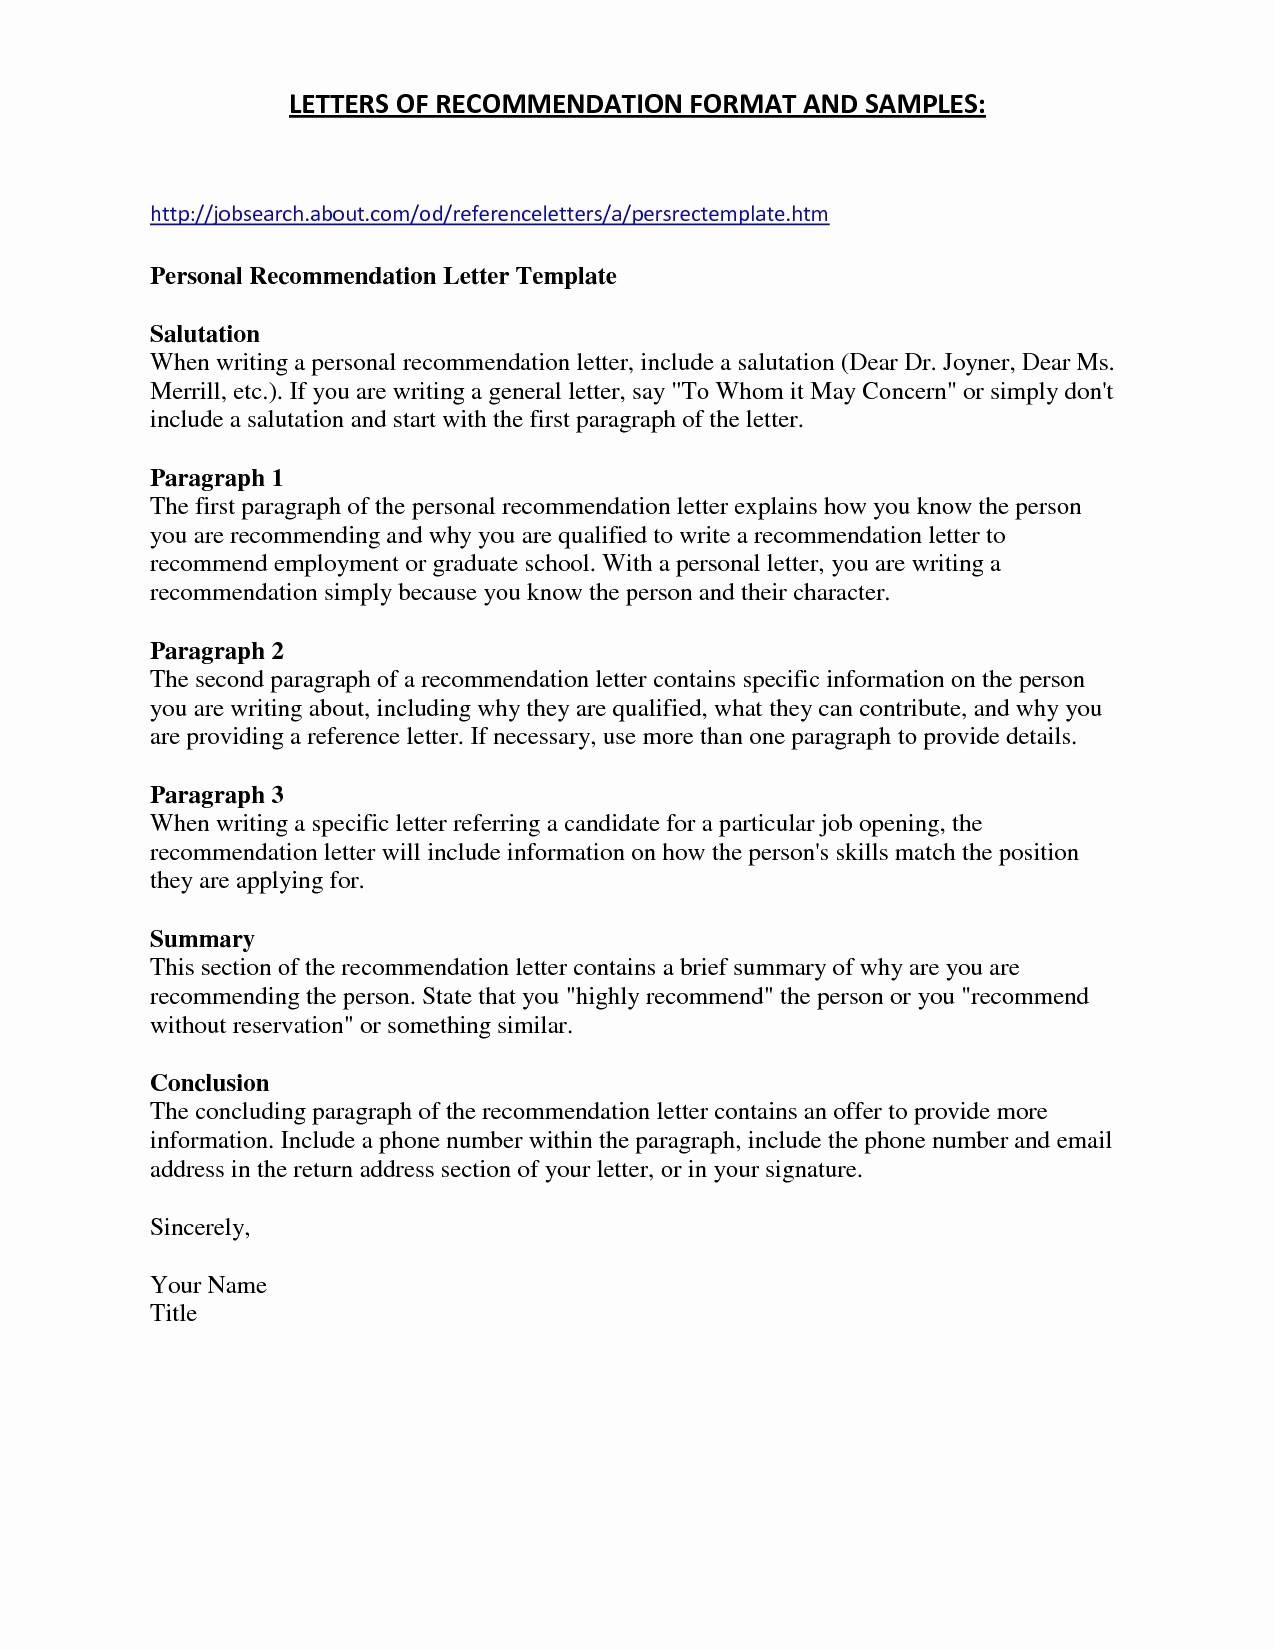 Rental Offer Letter Template - How to Write A Cover Letter for A Rental Application